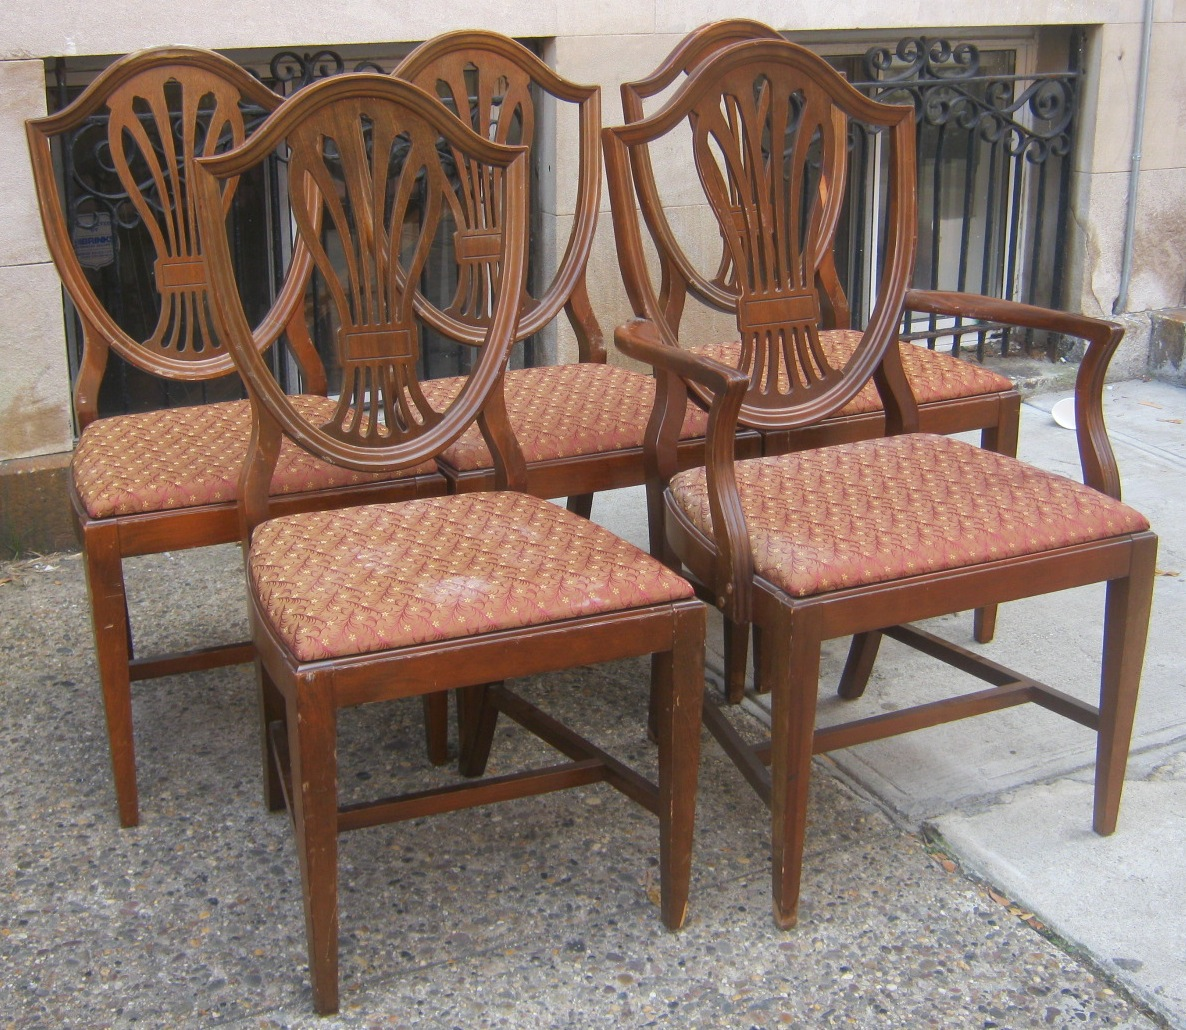 duncan phyfe chairs dining room sets 6 uhuru furniture and collectibles style sold